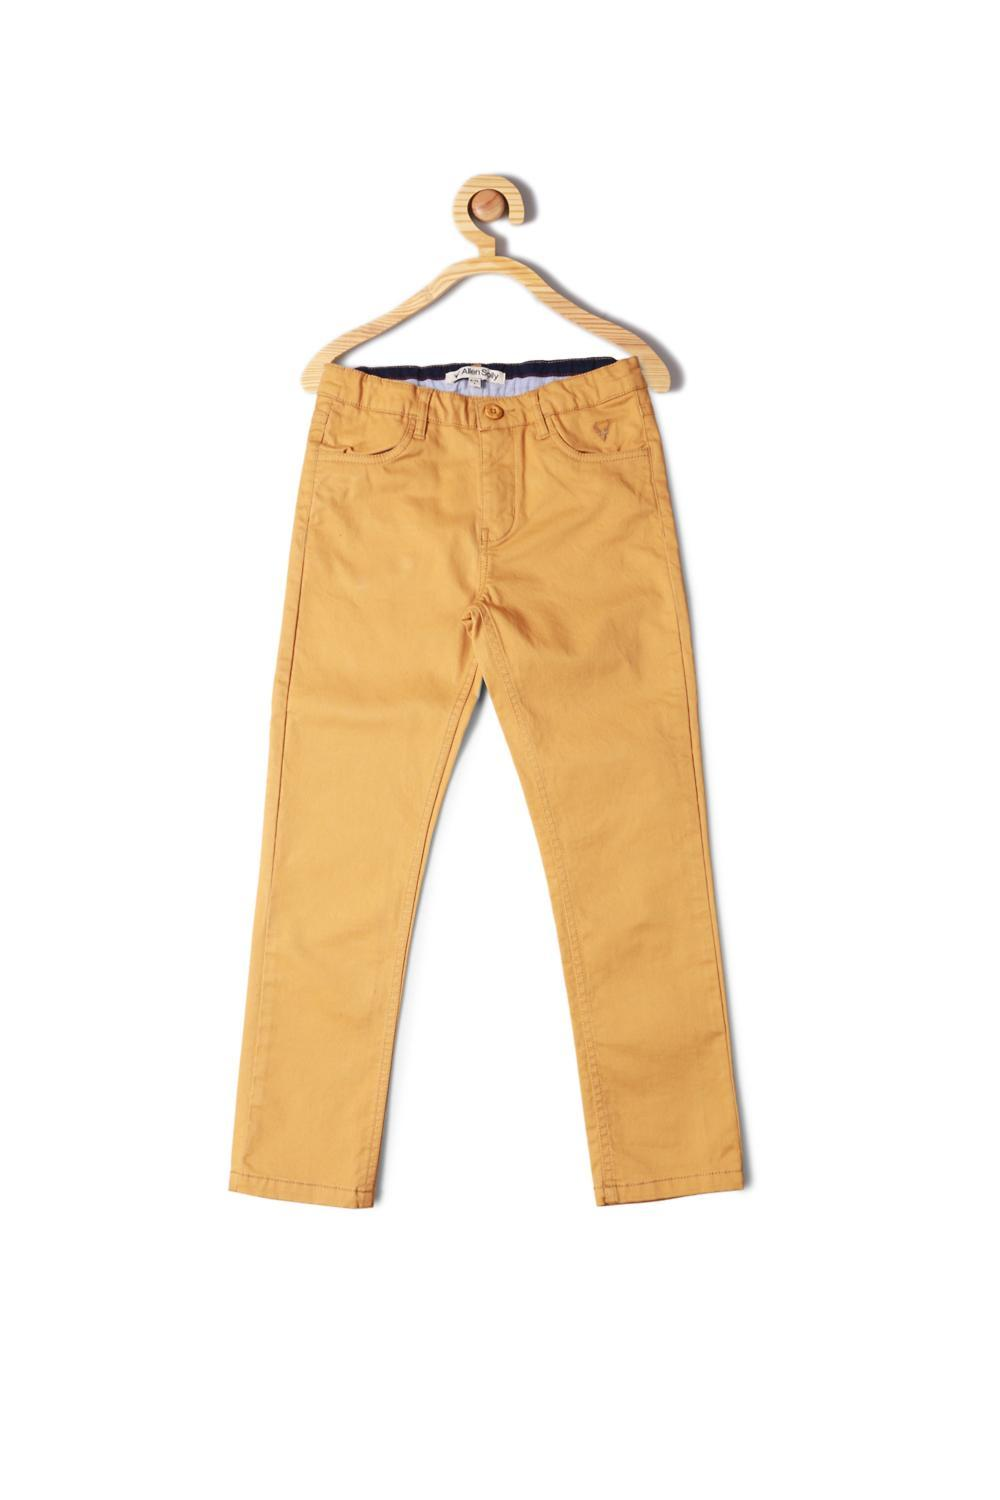 c9587234f Allen Solly Junior Bottoms, Allen Solly Yellow Trousers for Boys at ...